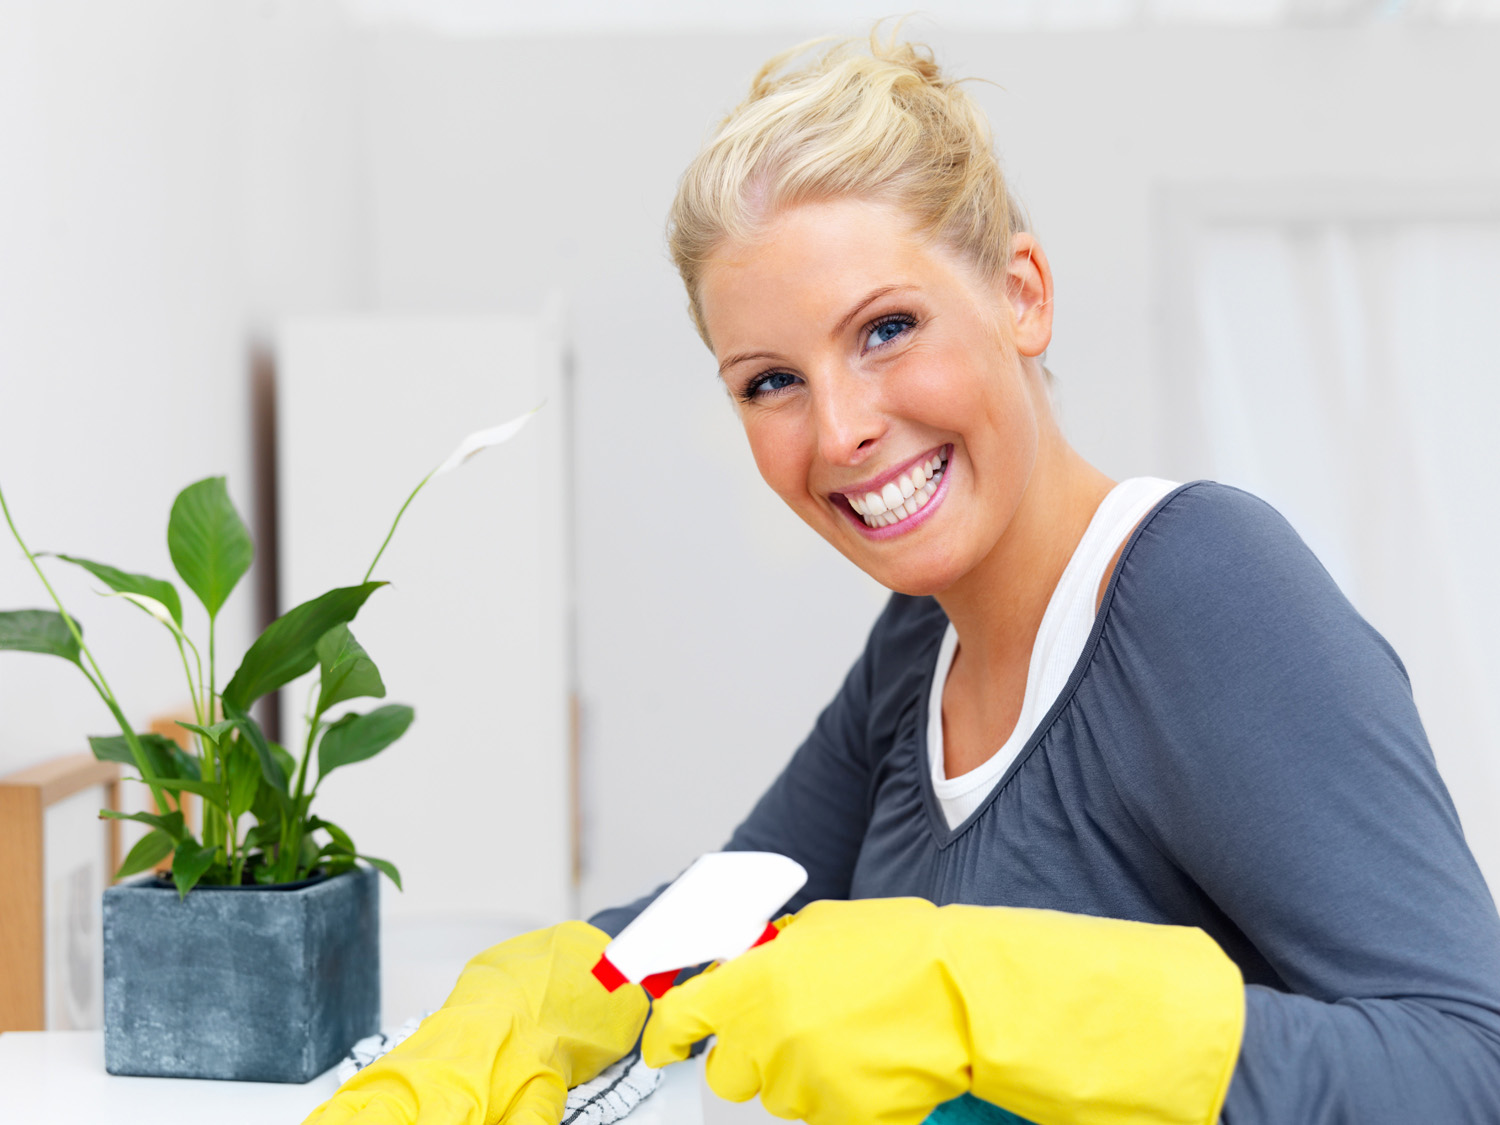 House Cleaning Services In Ottawa Carpet Cleaning Ottawa